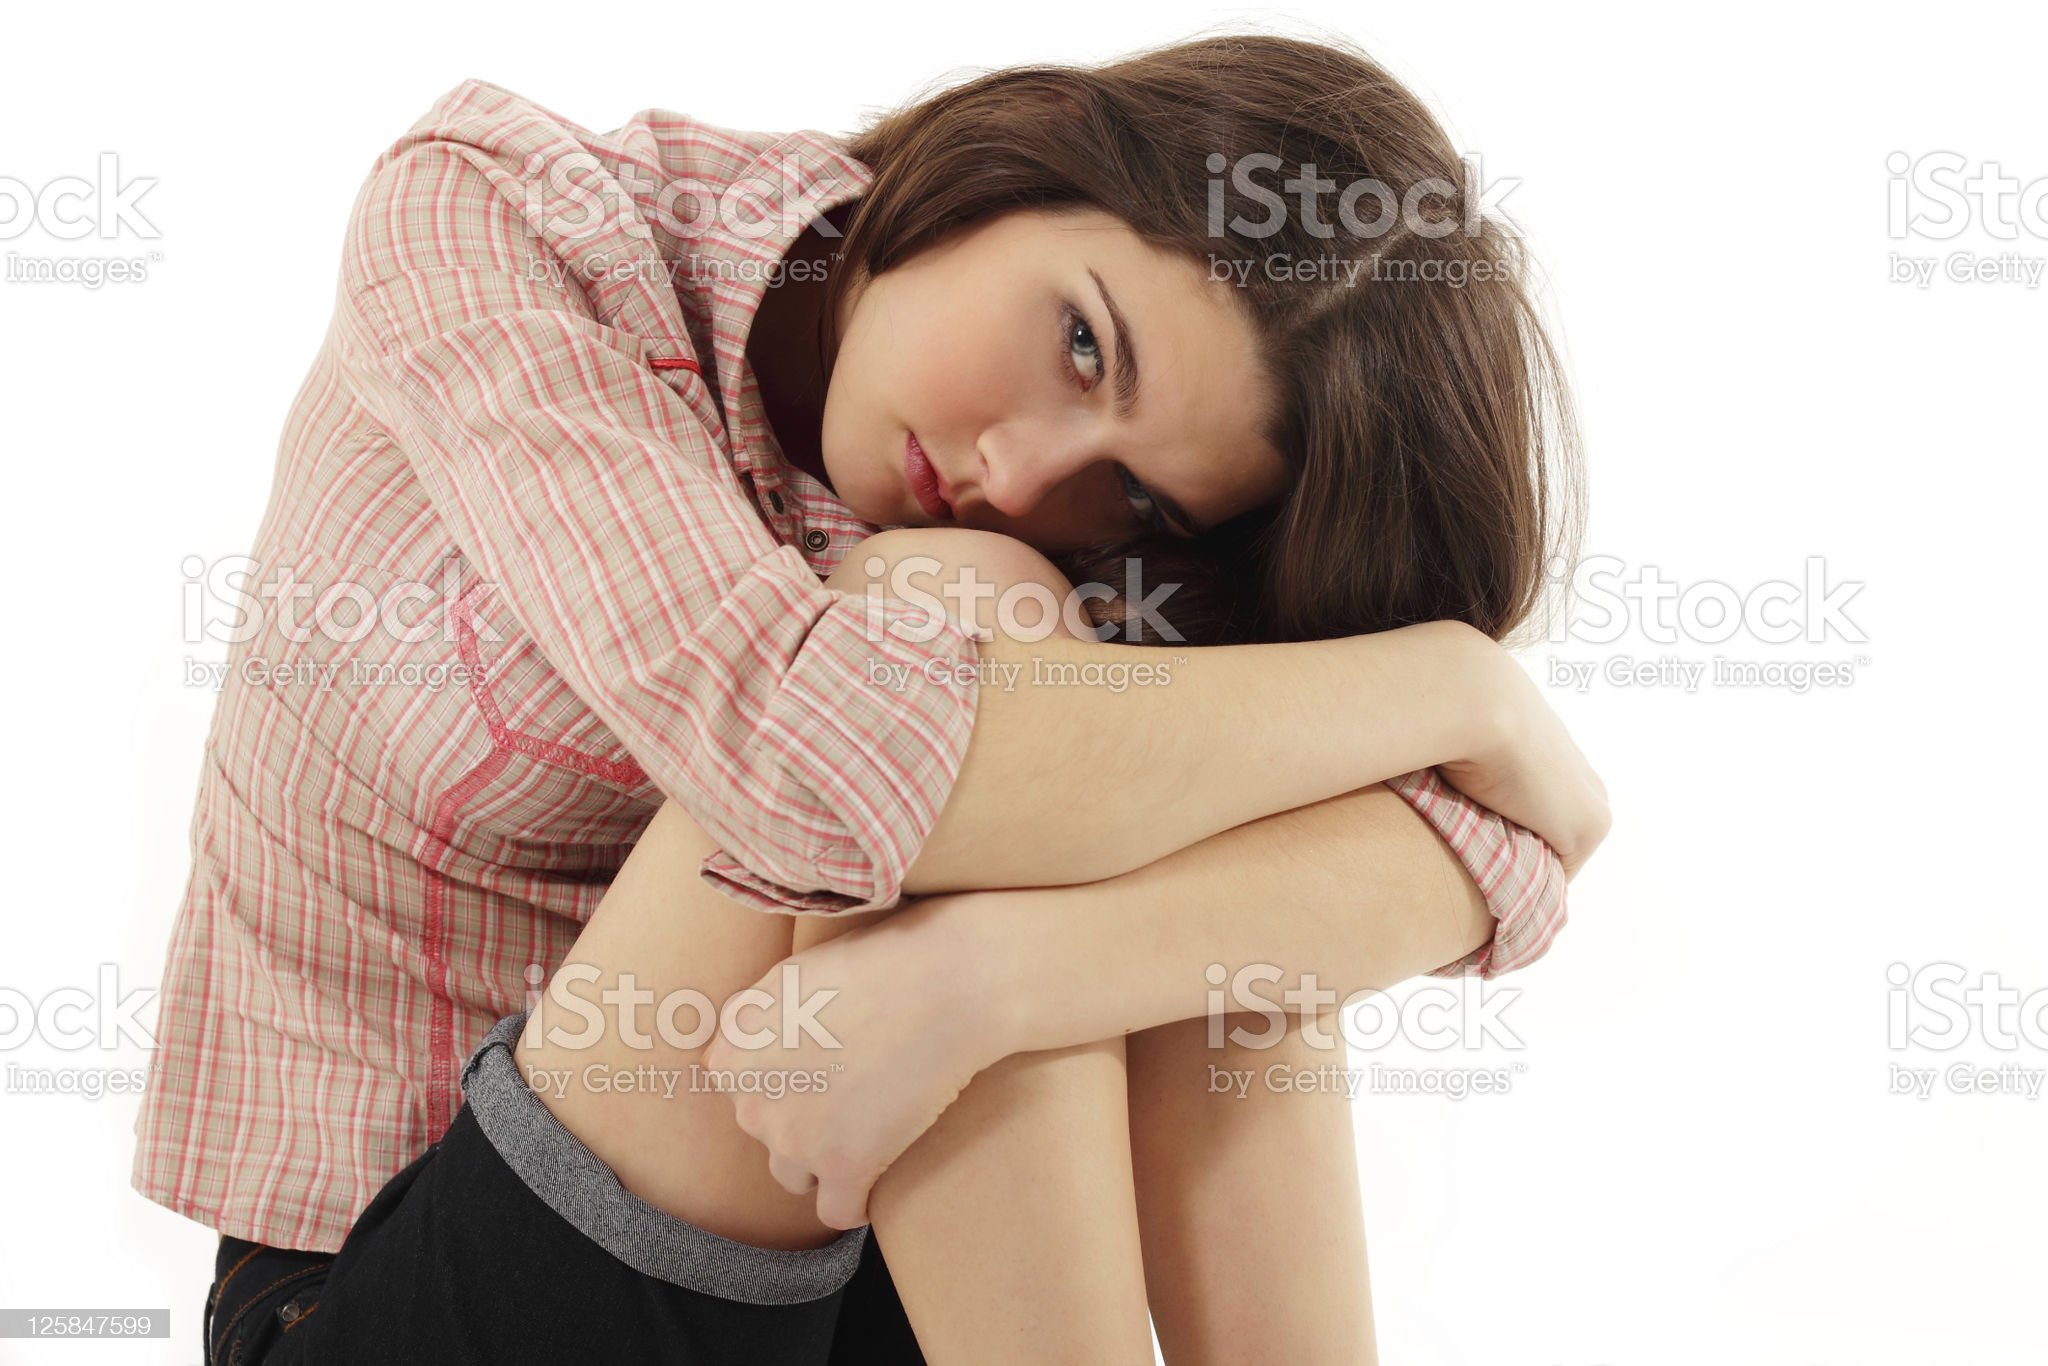 depression teen girl cried lonely royalty-free stock photo